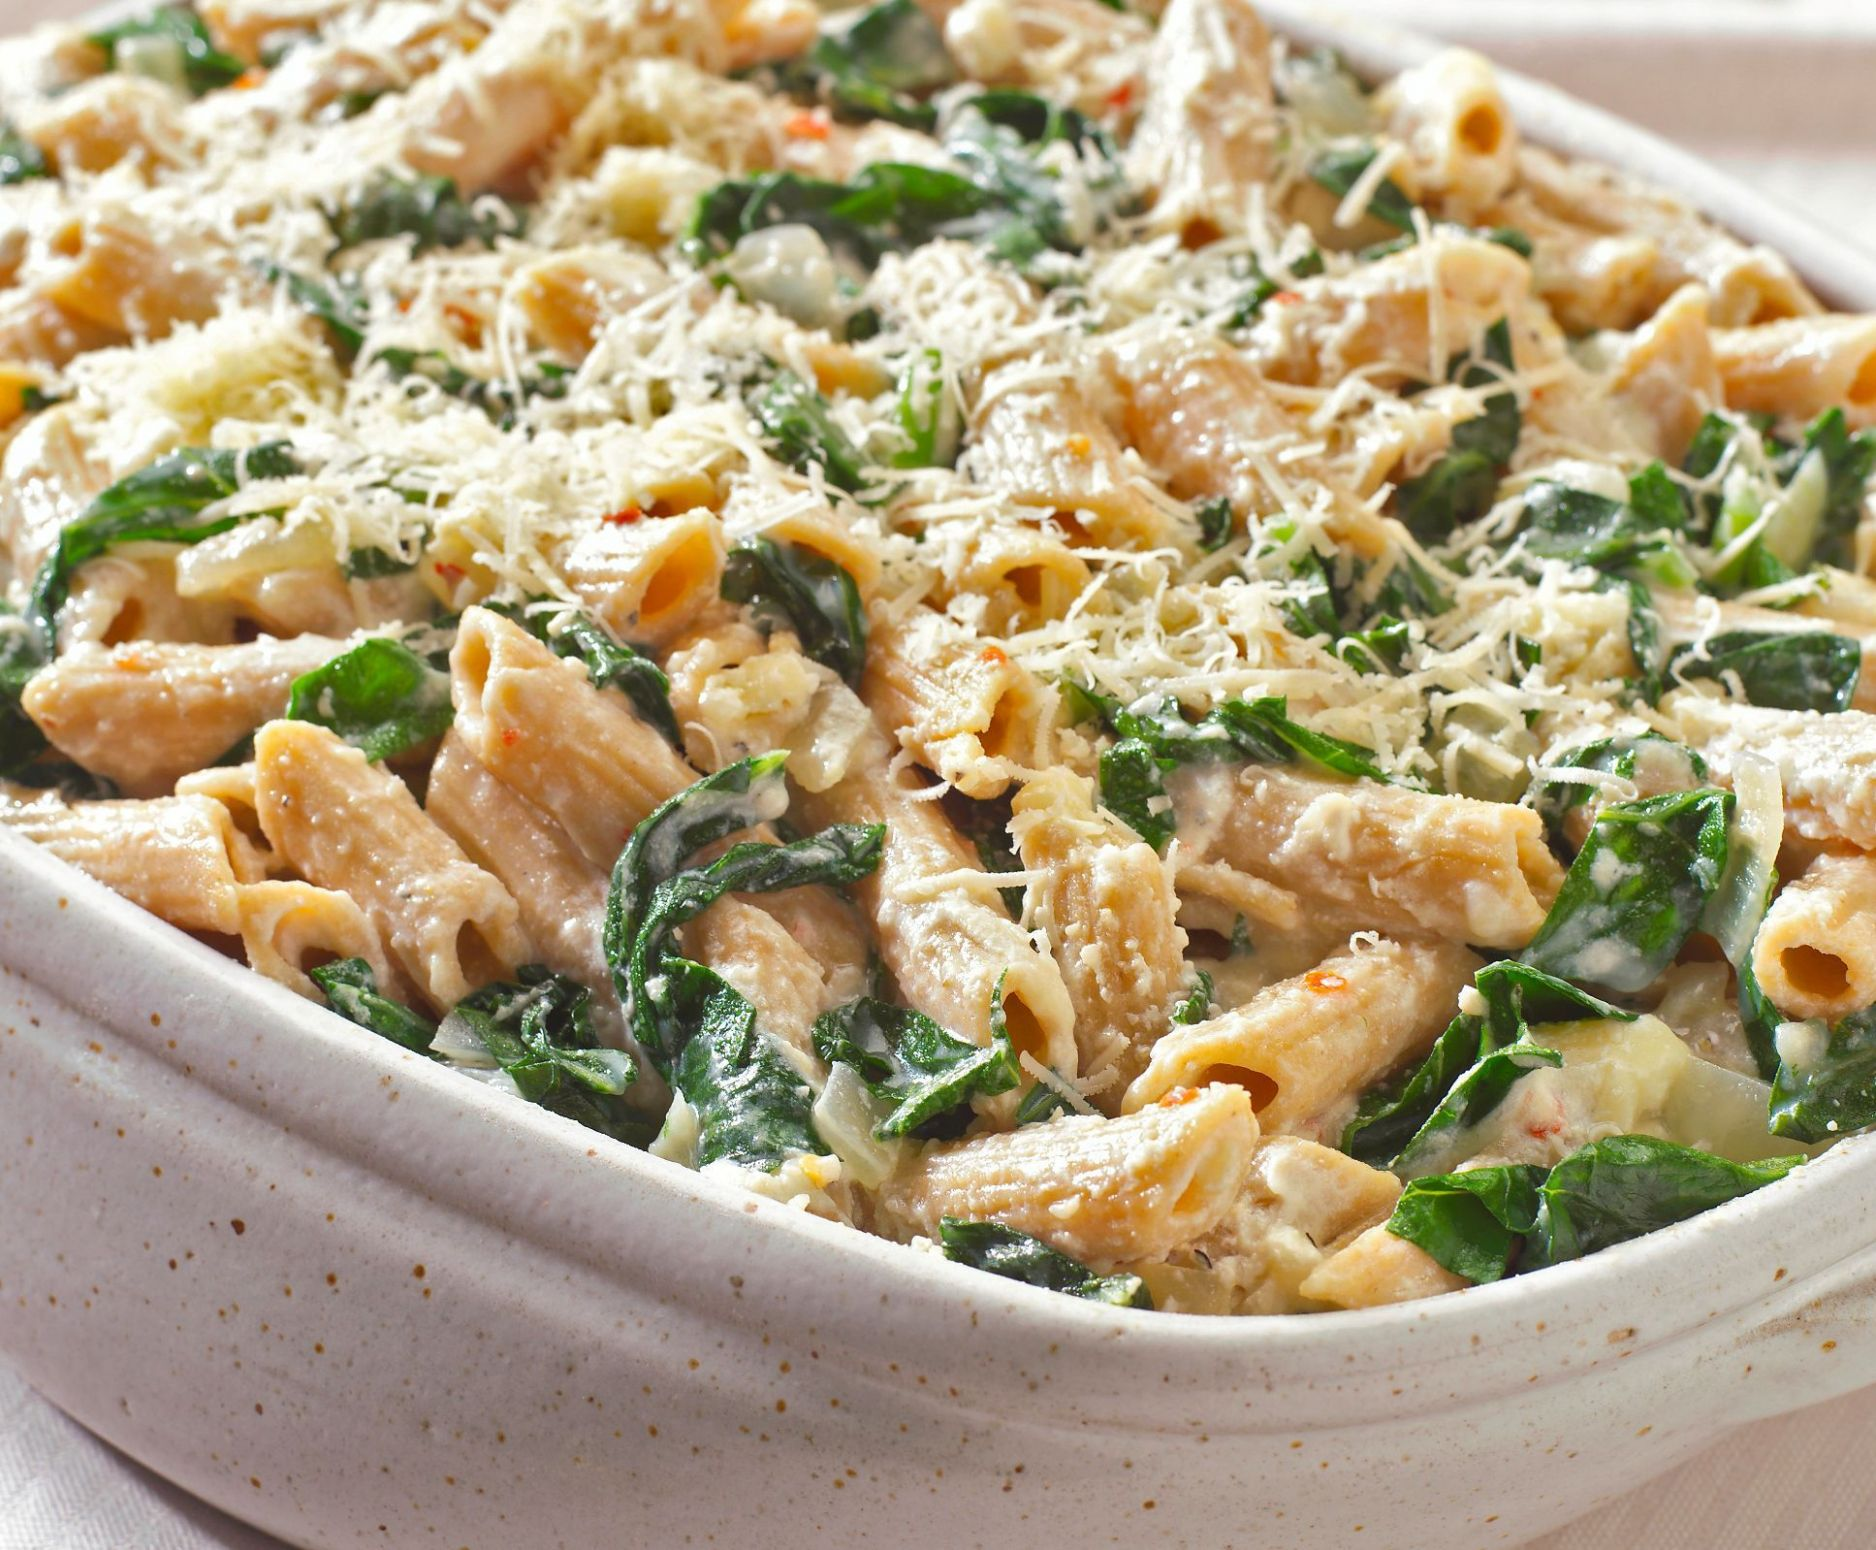 Vegetarian Oven-Baked Pasta With Ricotta Cheese and Spinach - Pasta Recipes Using Ricotta Cheese